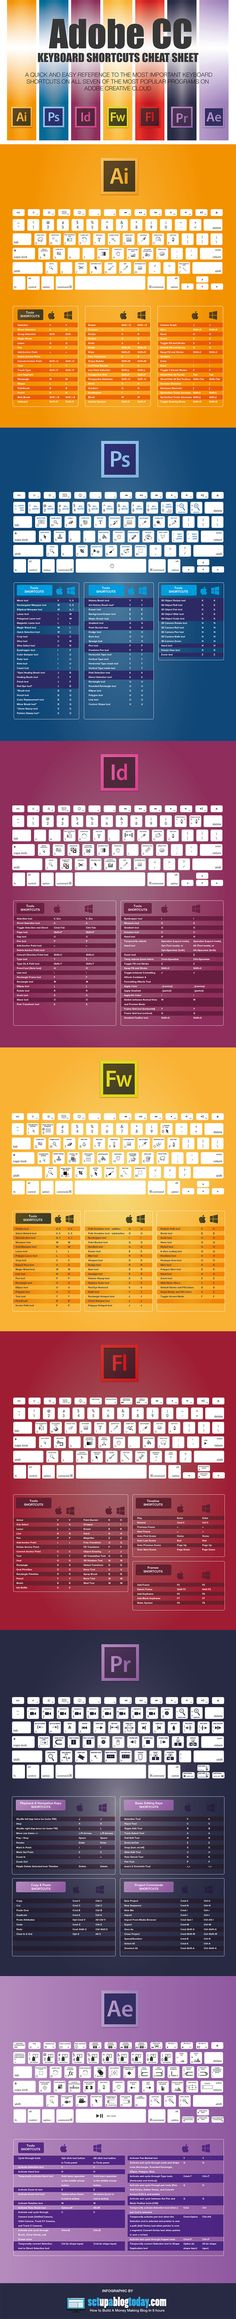 Keyboard shortcuts are the ticket to working faster in many programs. This cheat sheet will help you work more efficiently in Adobe Creative Cloud apps, including Photoshop, Illustrator, InDesign, and Premier Pro. Photoshop tips. Visual Design, Graphisches Design, Graphic Design Tips, Tool Design, Graphic Design Inspiration, Rug Inspiration, Print Design, Actions Photoshop, Photoshop Tutorial